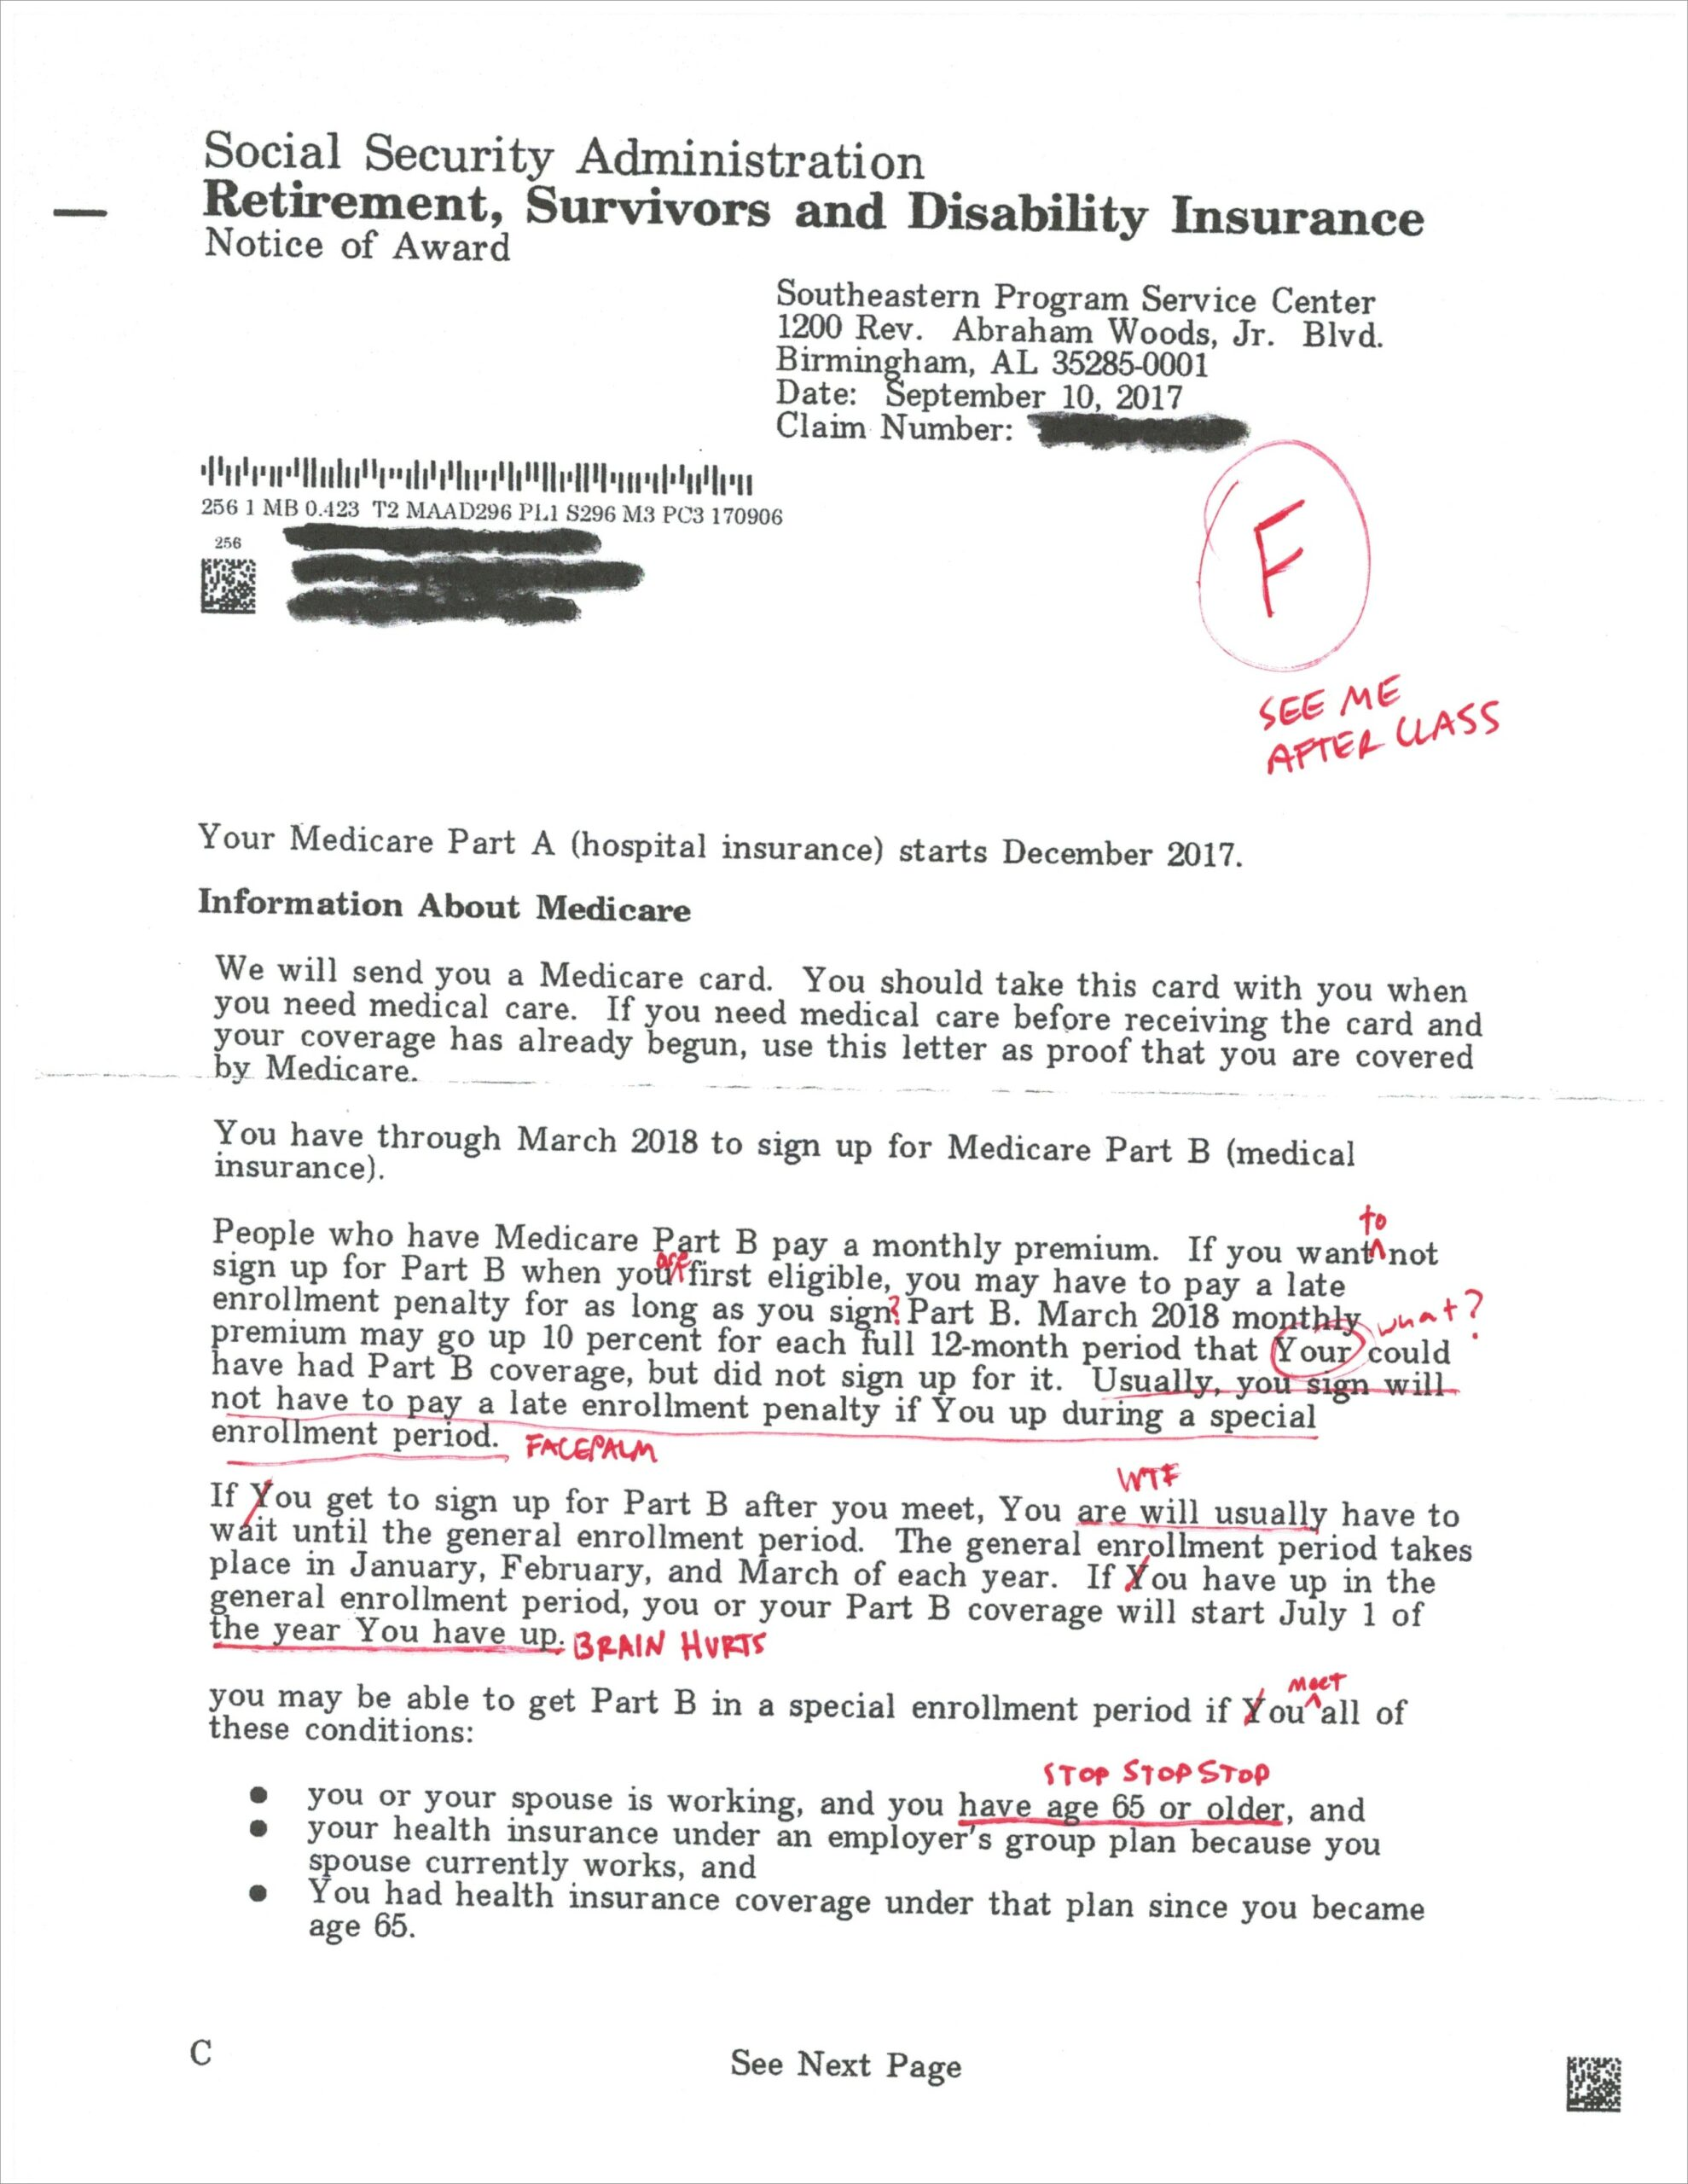 Ssdi Award Letter Sample